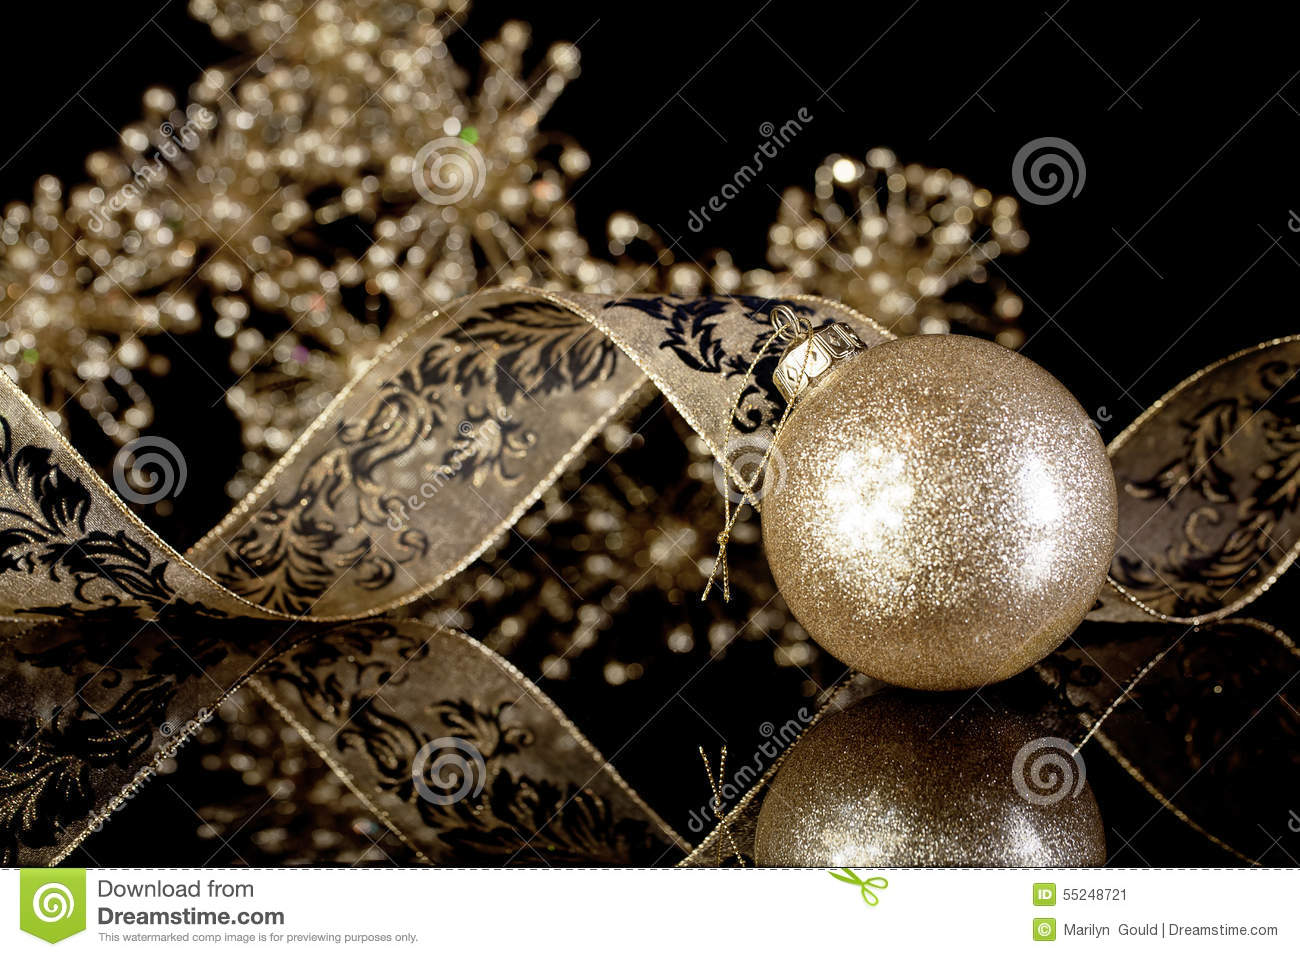 download glitter gold christmas ornament stock image image of holiday christmas 55248721 - Black And Gold Christmas Ornaments